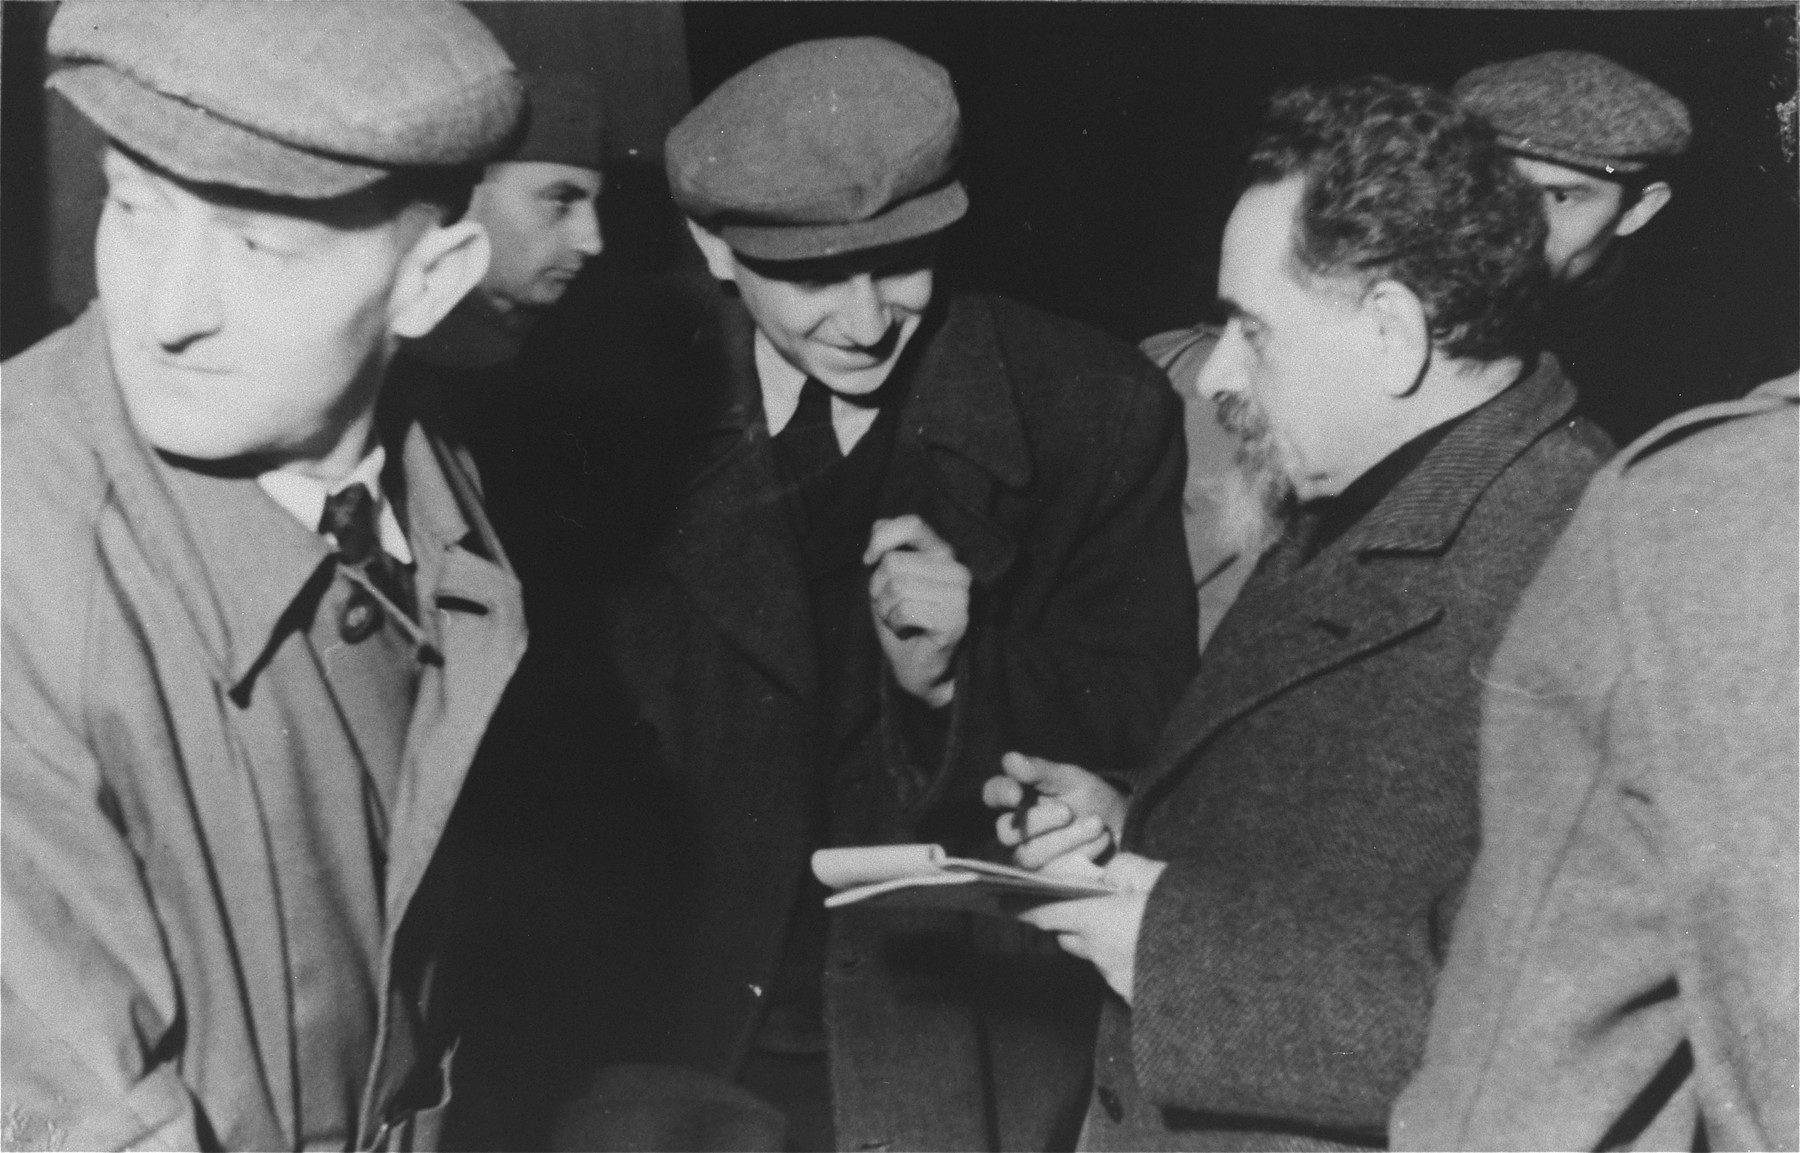 Yitzhak Gruenbaum in conversation with DPs during his visit to the Zeilsheim displaced persons camp.